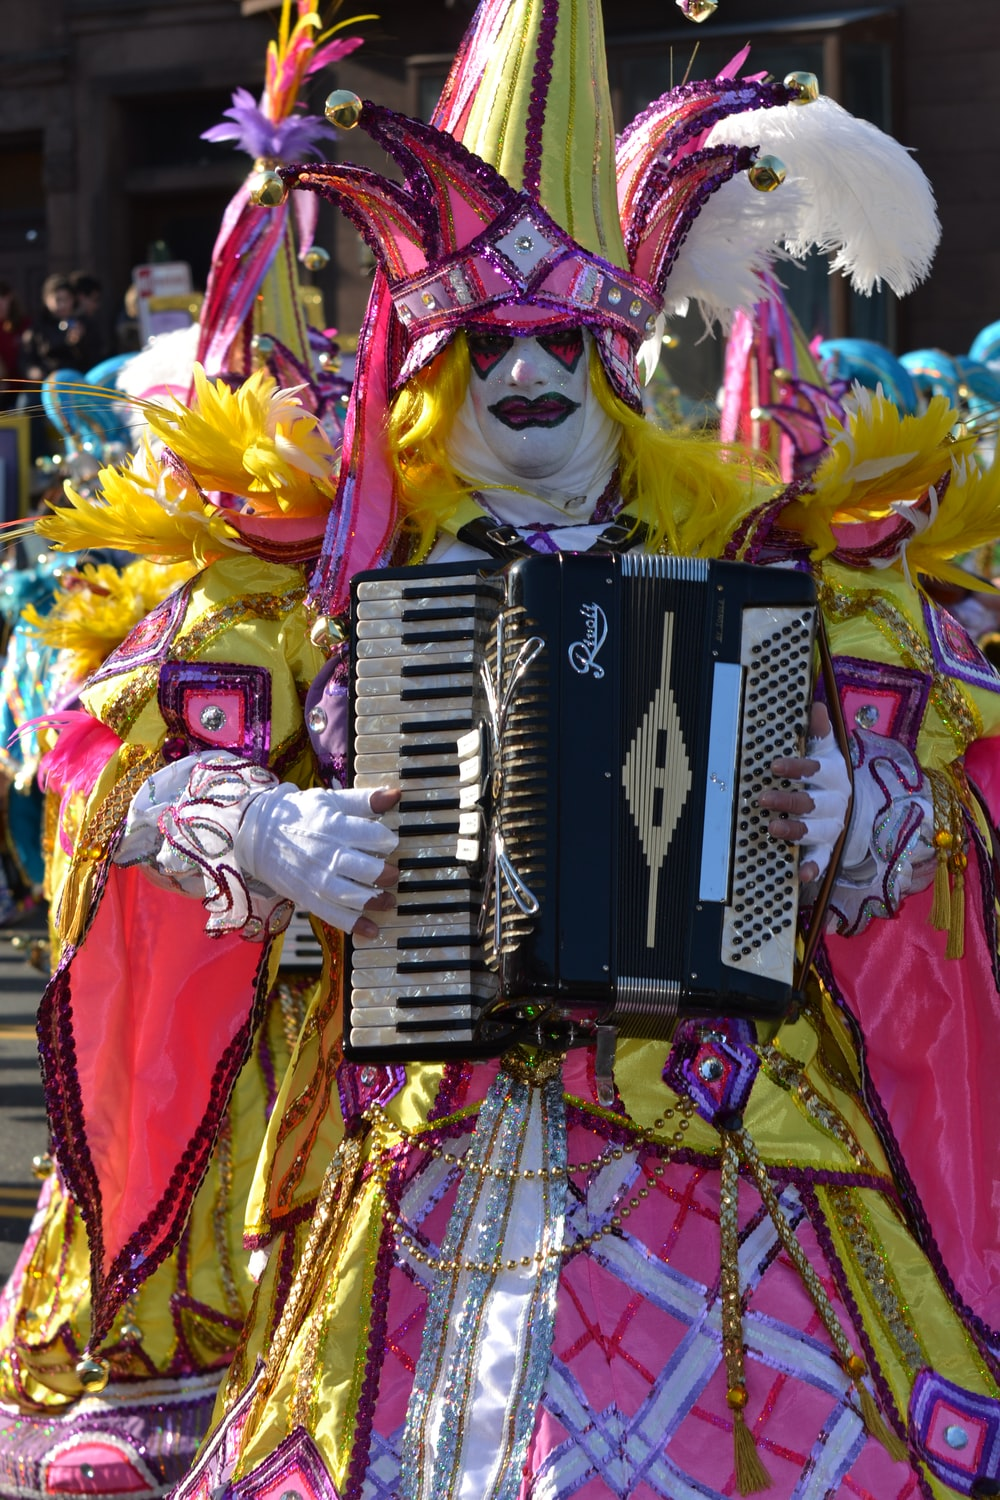 person in yellow and red costume playing black and white electric keyboard